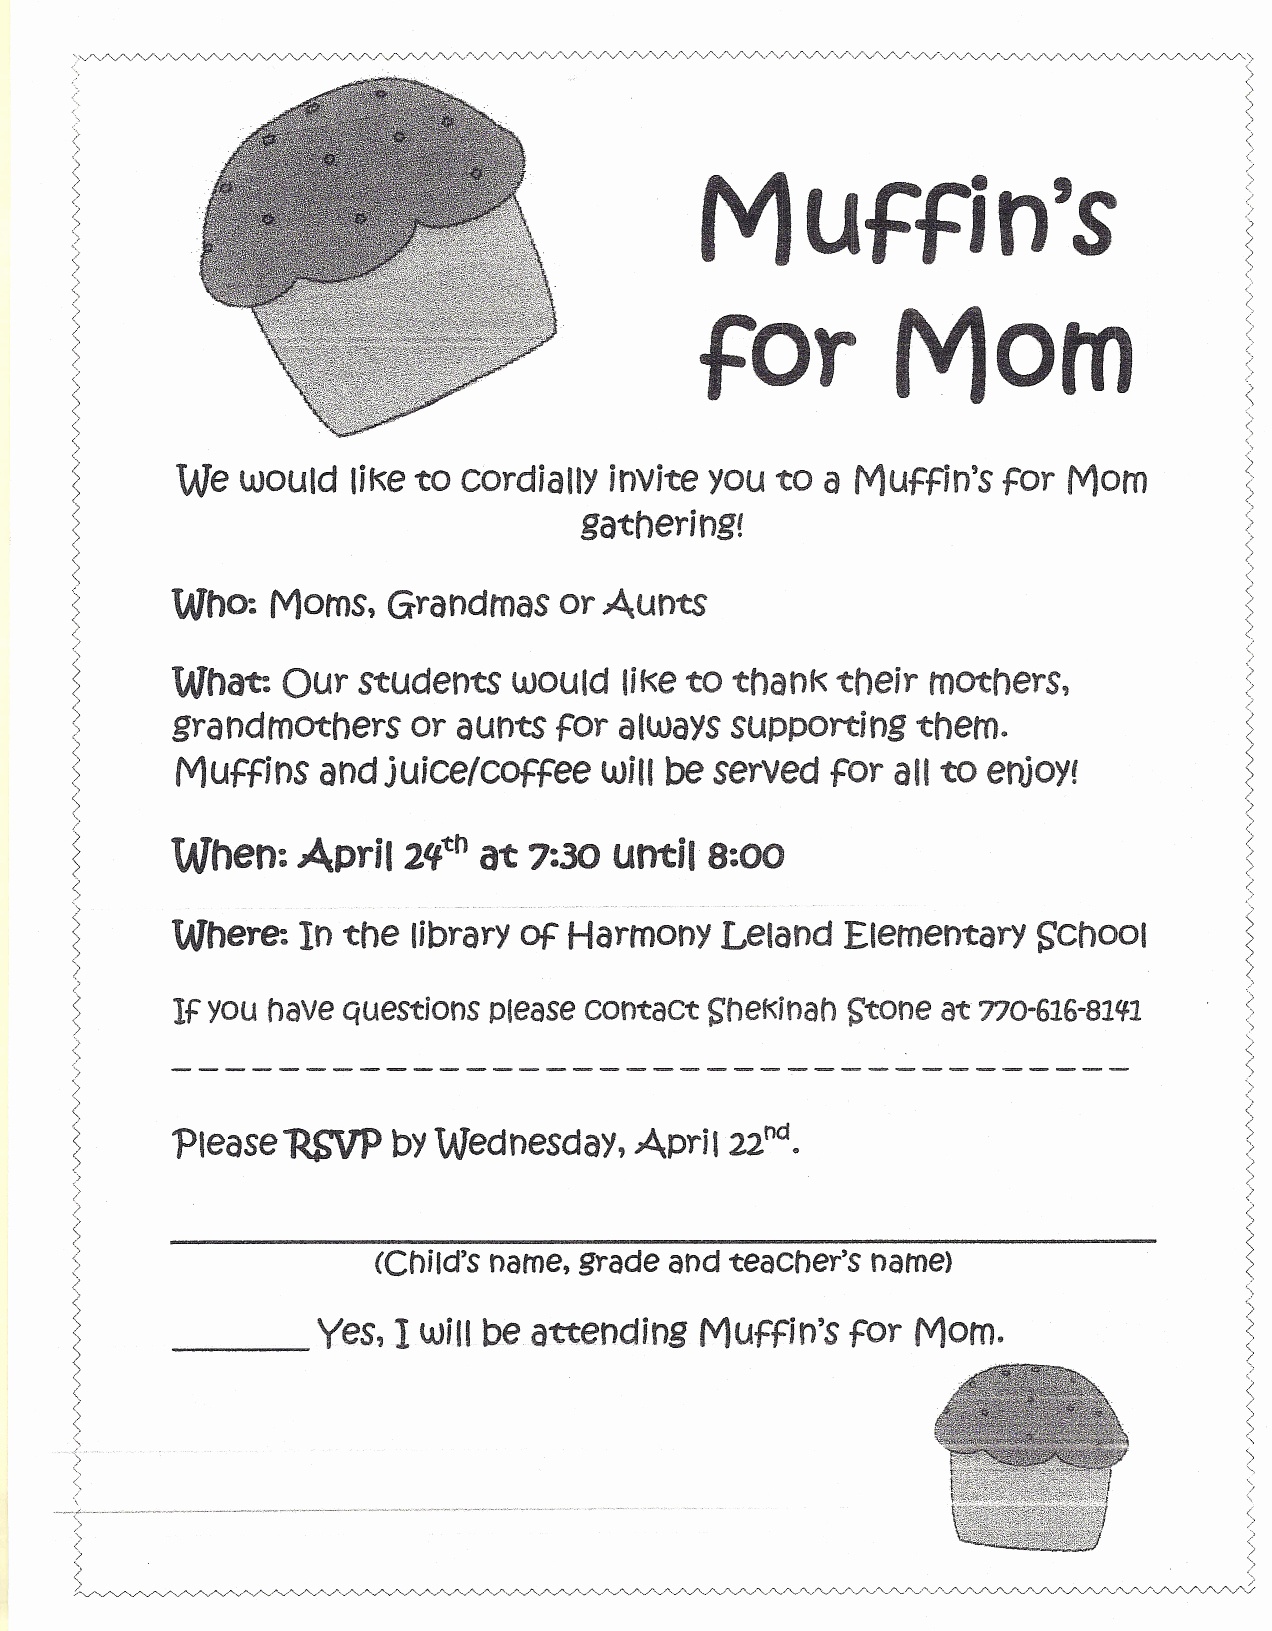 Muffins with Mom Invitation Lovely Harmony Leland Elementary School Pta